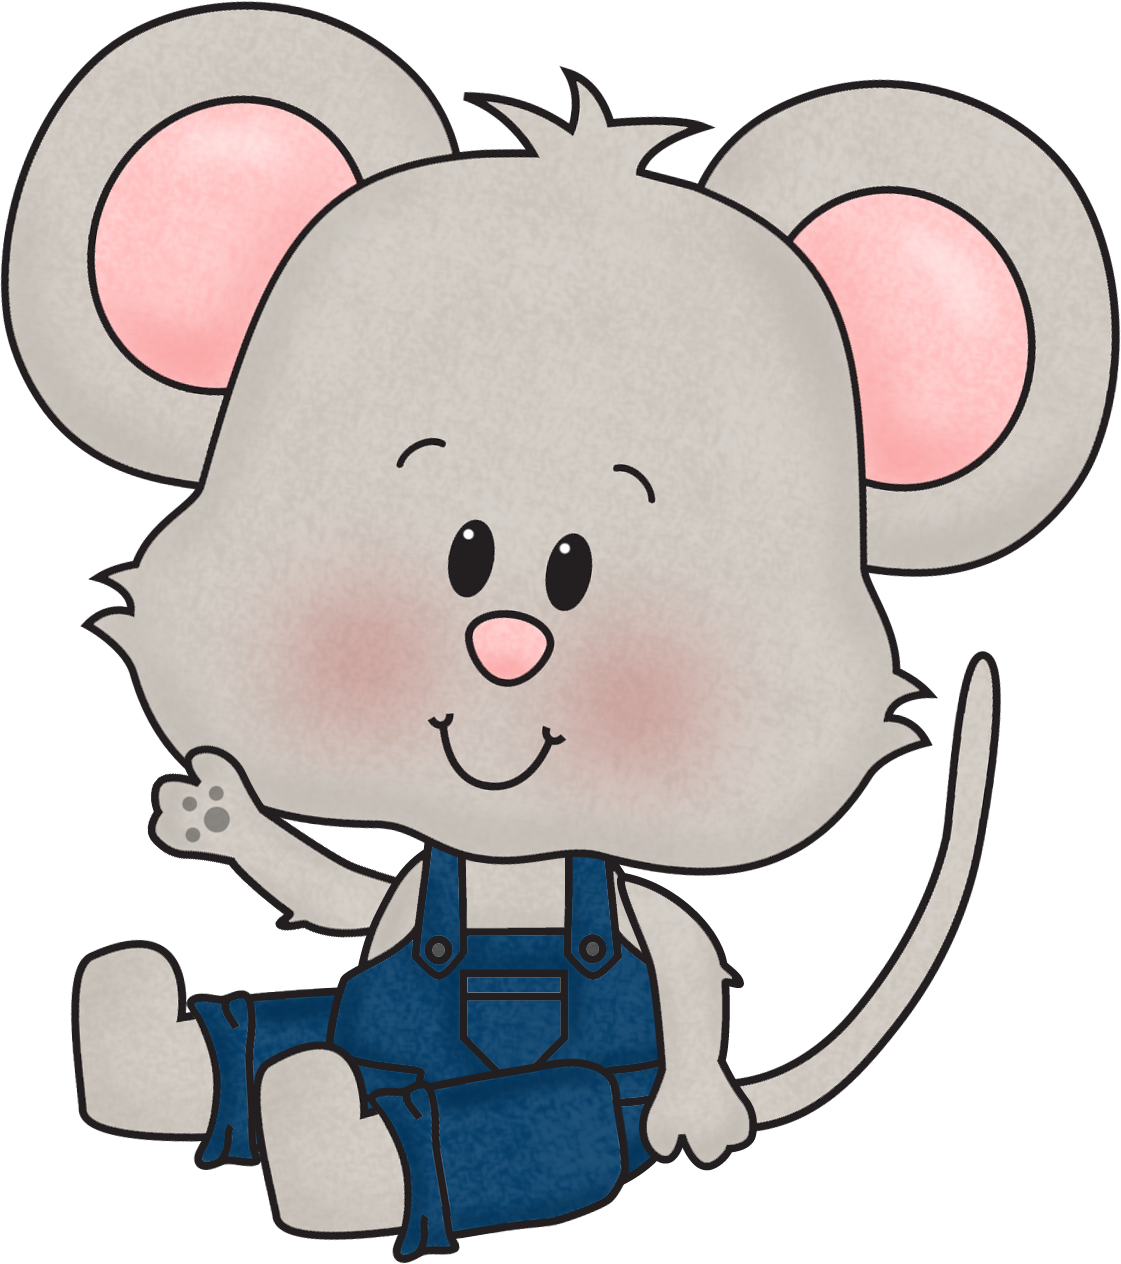 Raton clipart picture free stock Free Cute Mouse Cliparts, Download Free Clip Art, Free Clip Art on ... picture free stock